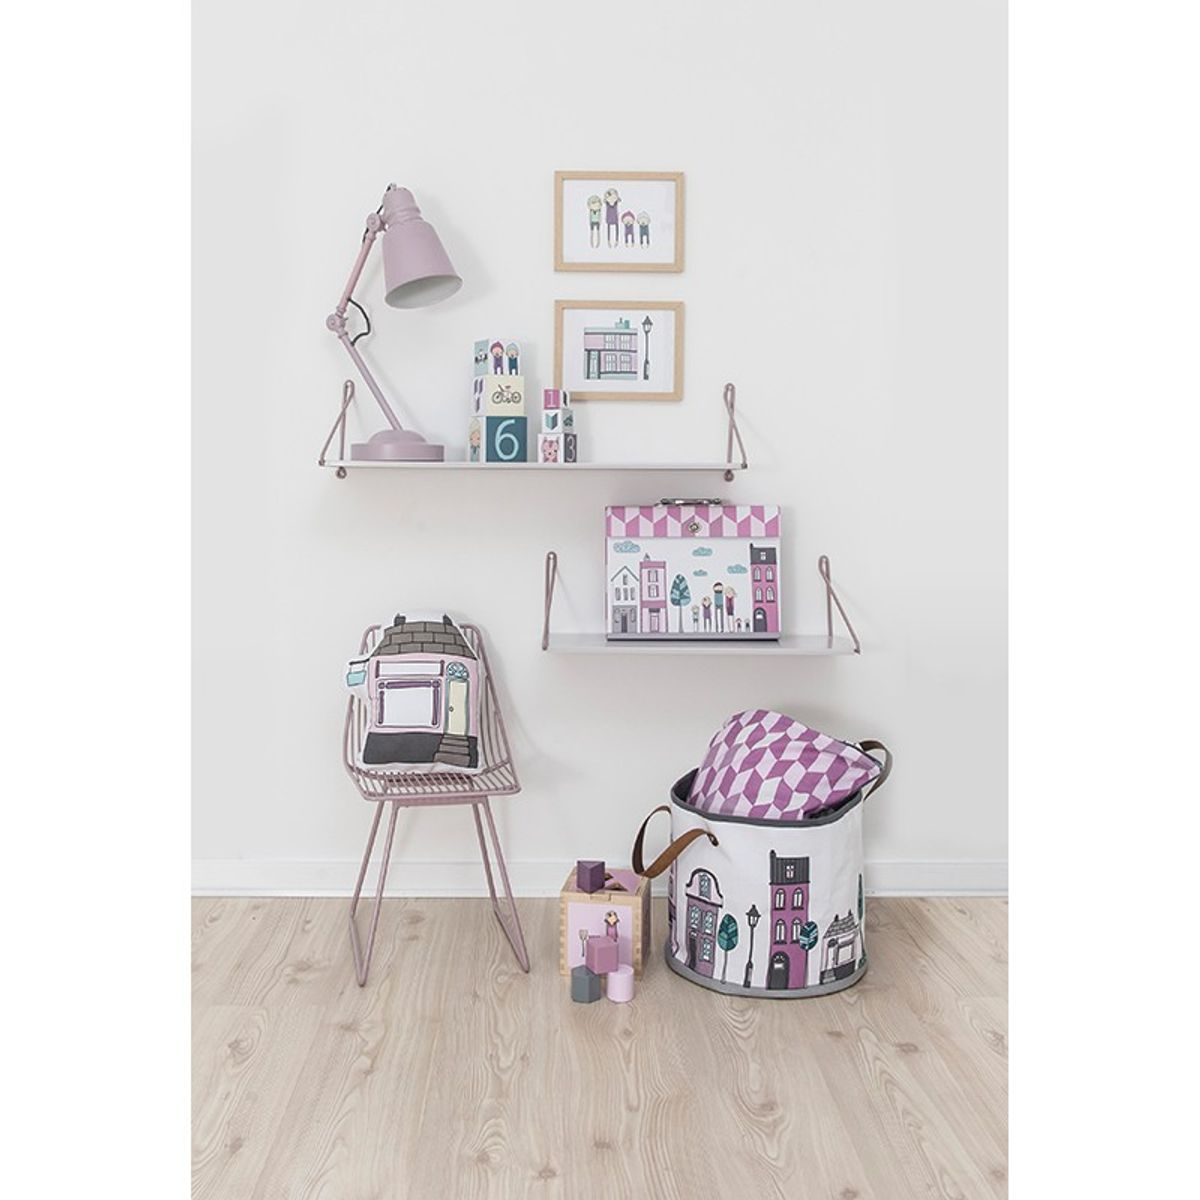 aufbewahrung kinderzimmer spielzeugtasche village girl. Black Bedroom Furniture Sets. Home Design Ideas